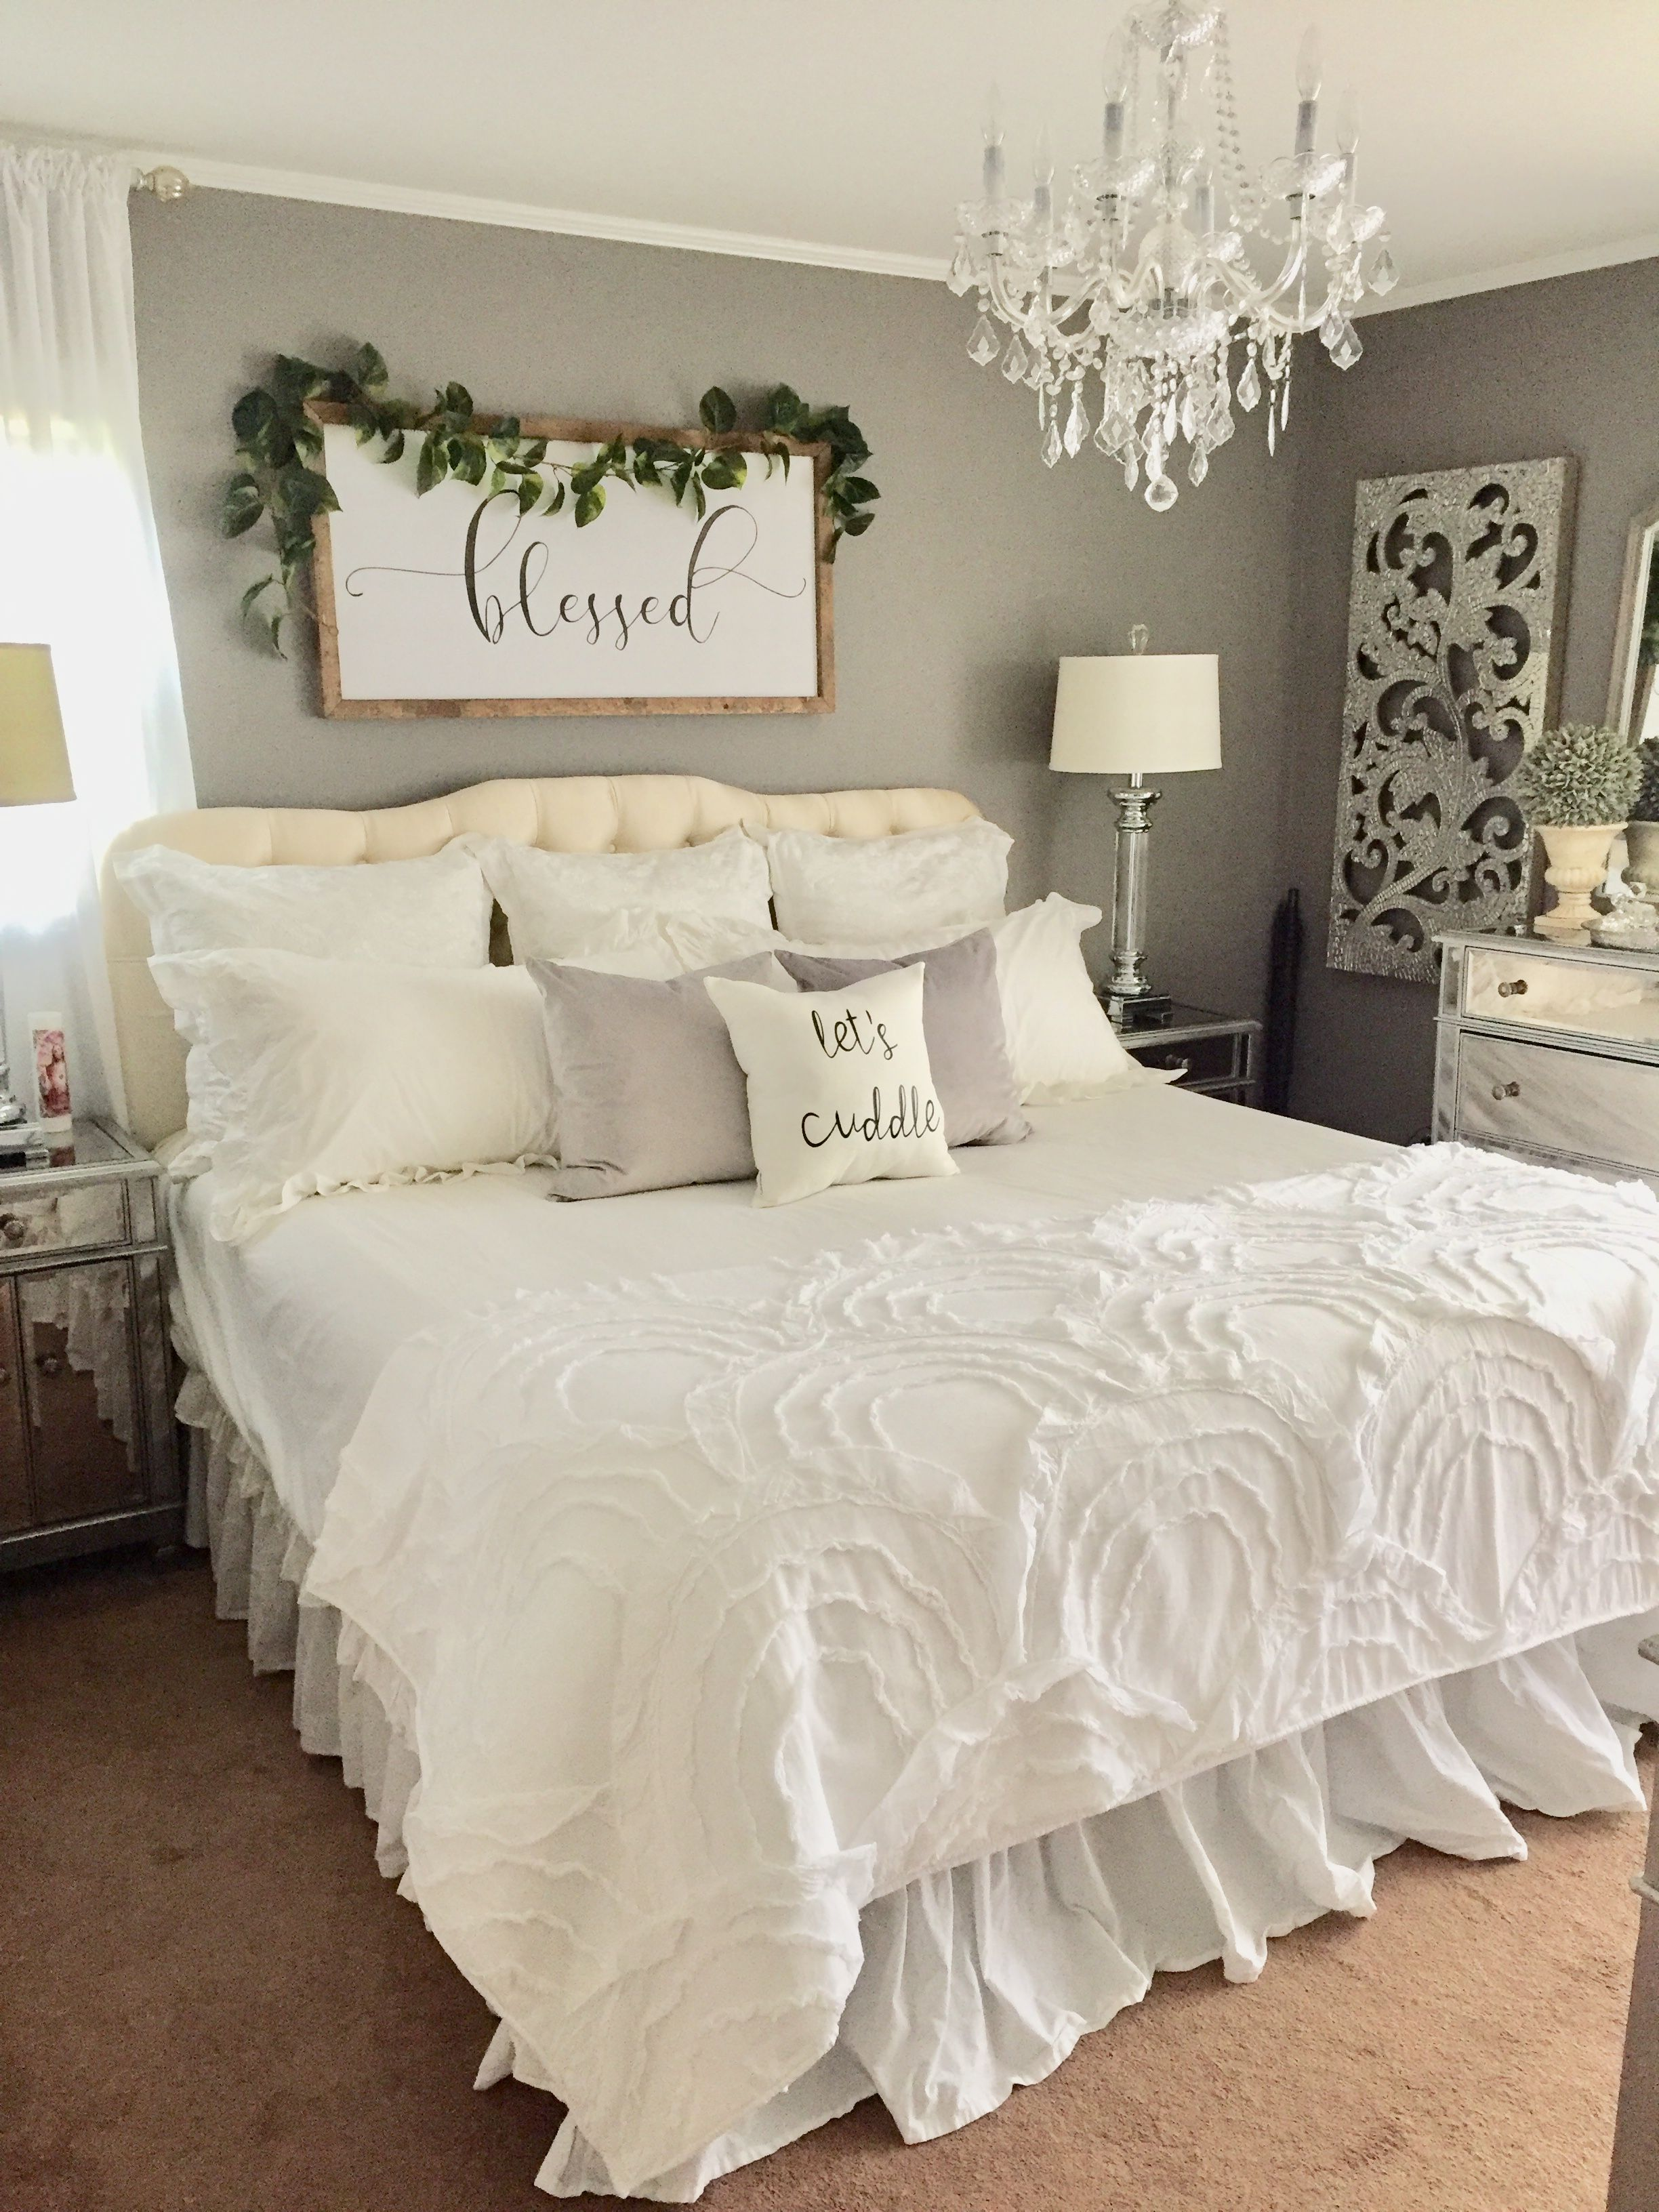 """We decided on forever"" sign with garland above headboard"